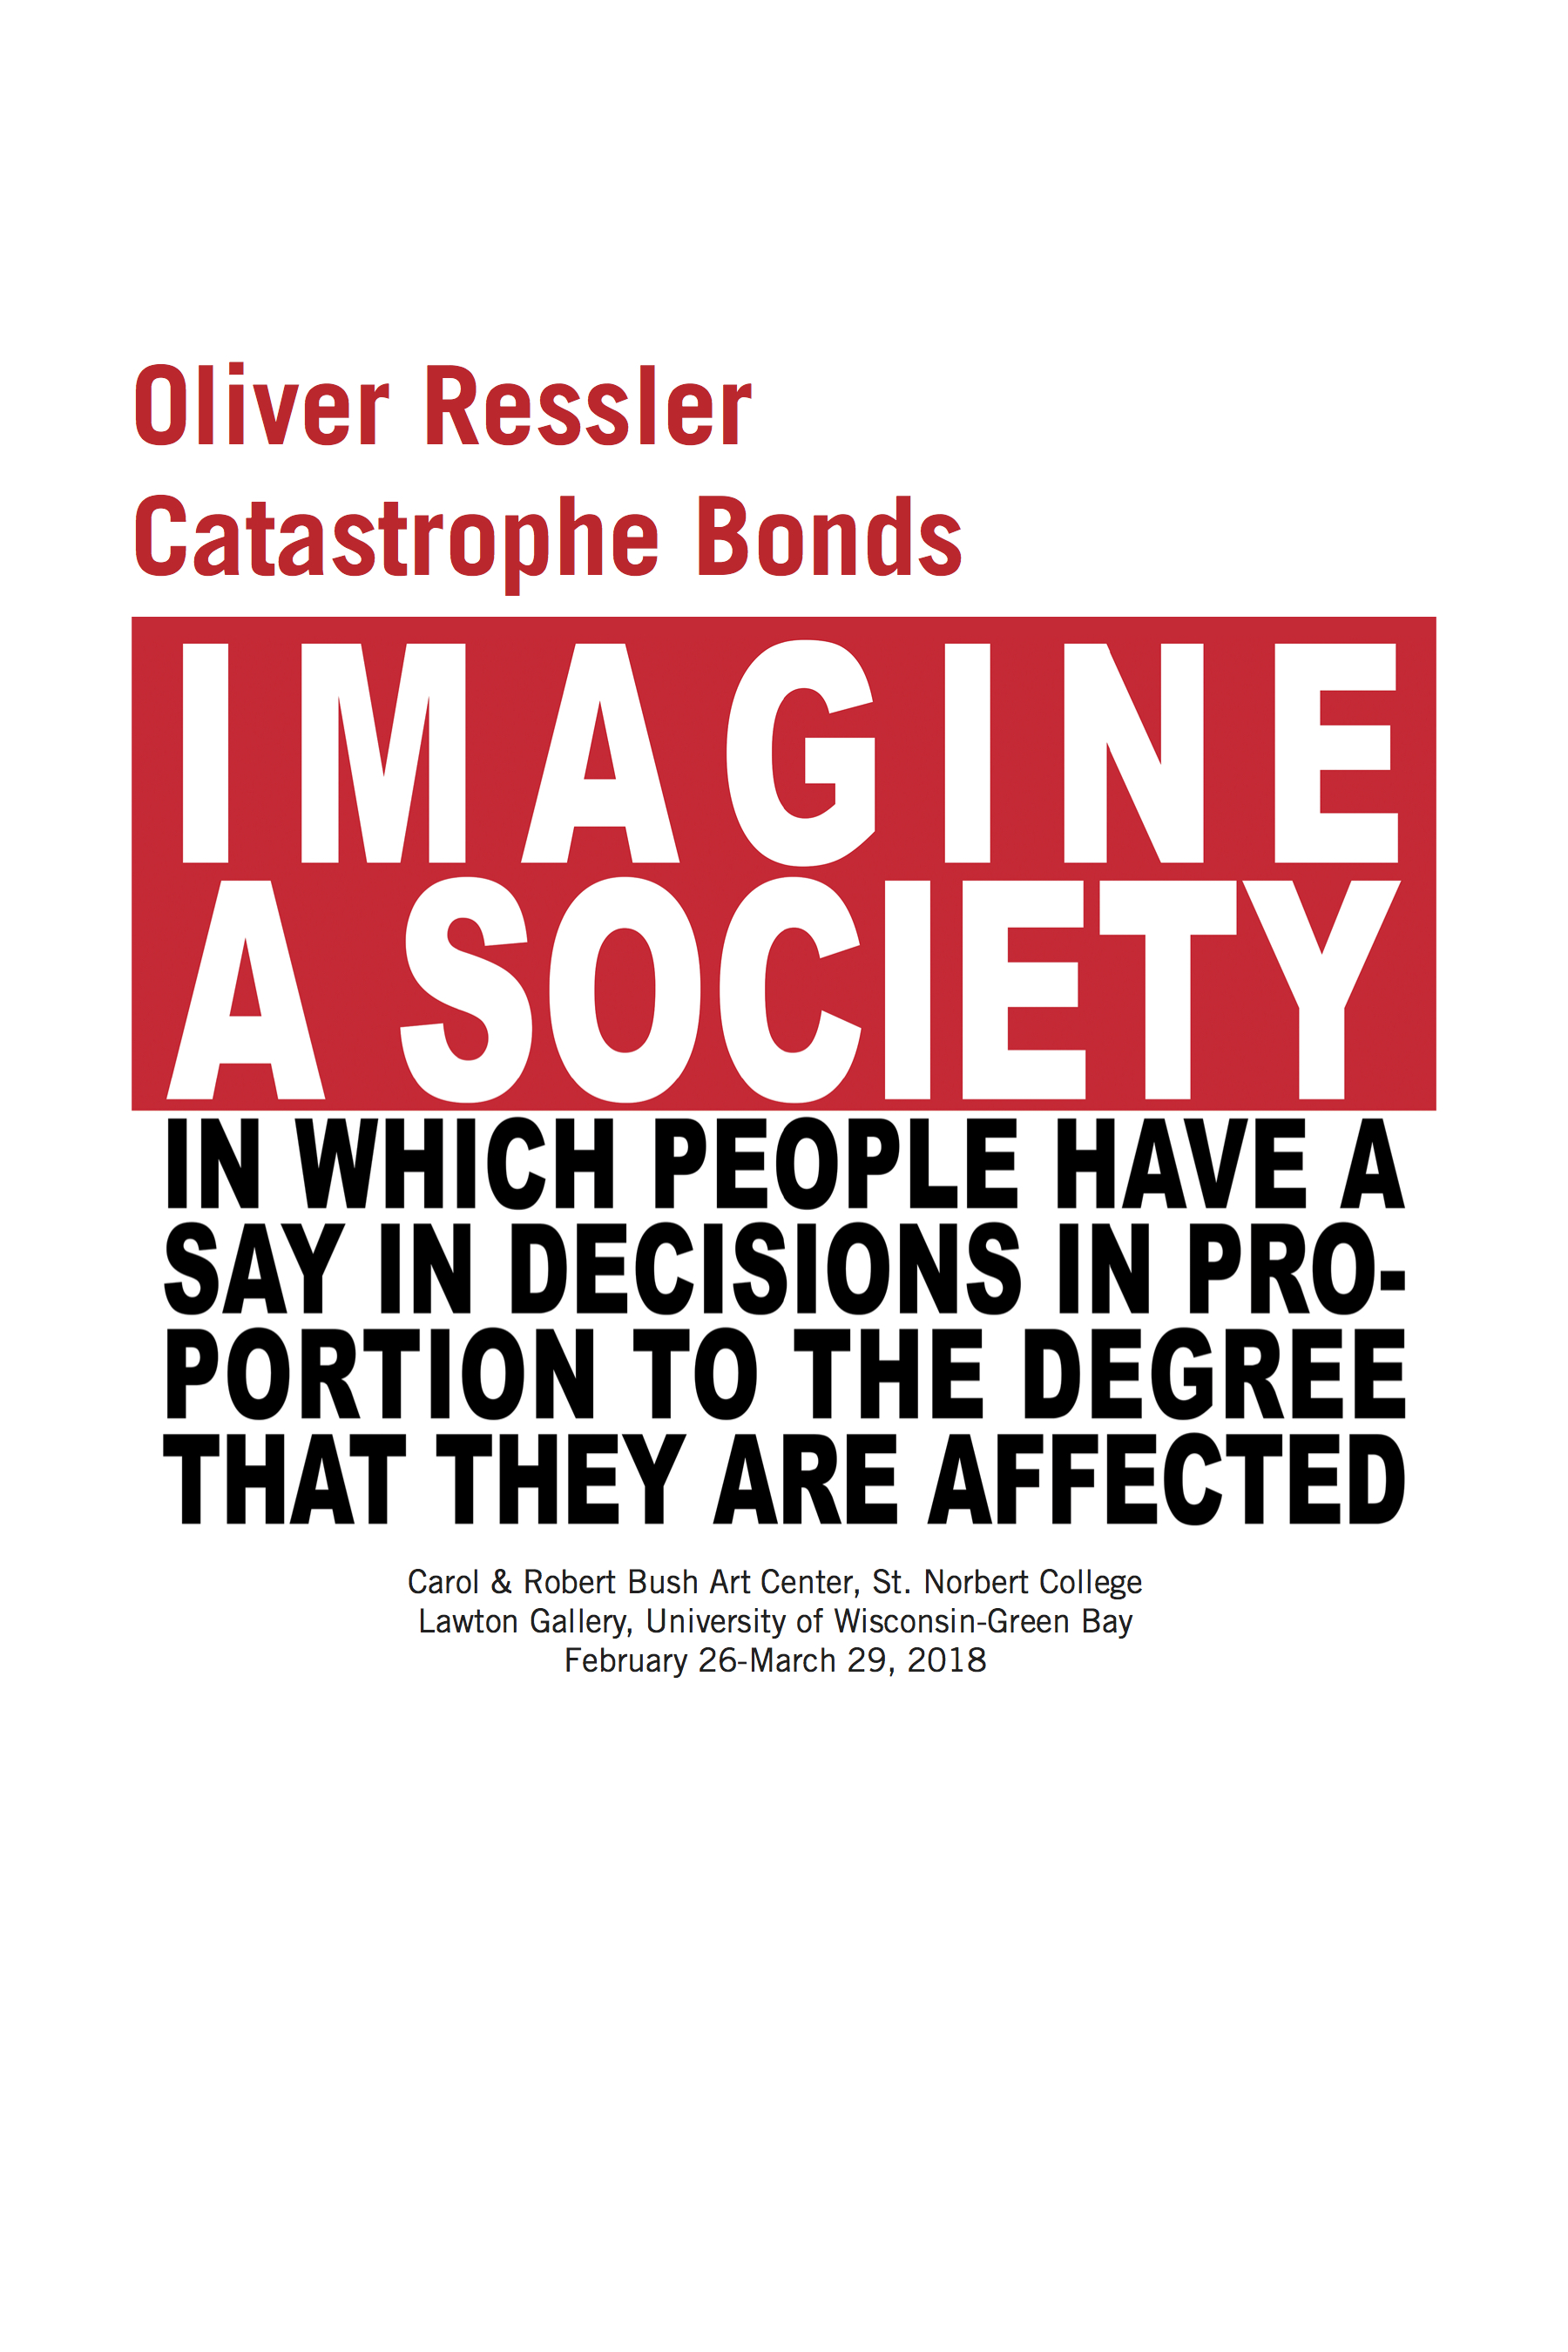 Blog of public secrets this essay was written for the exhibition catalogue oliver ressler catastrophe bonds the first major presentation of the work of oliver ressler in the fandeluxe Image collections